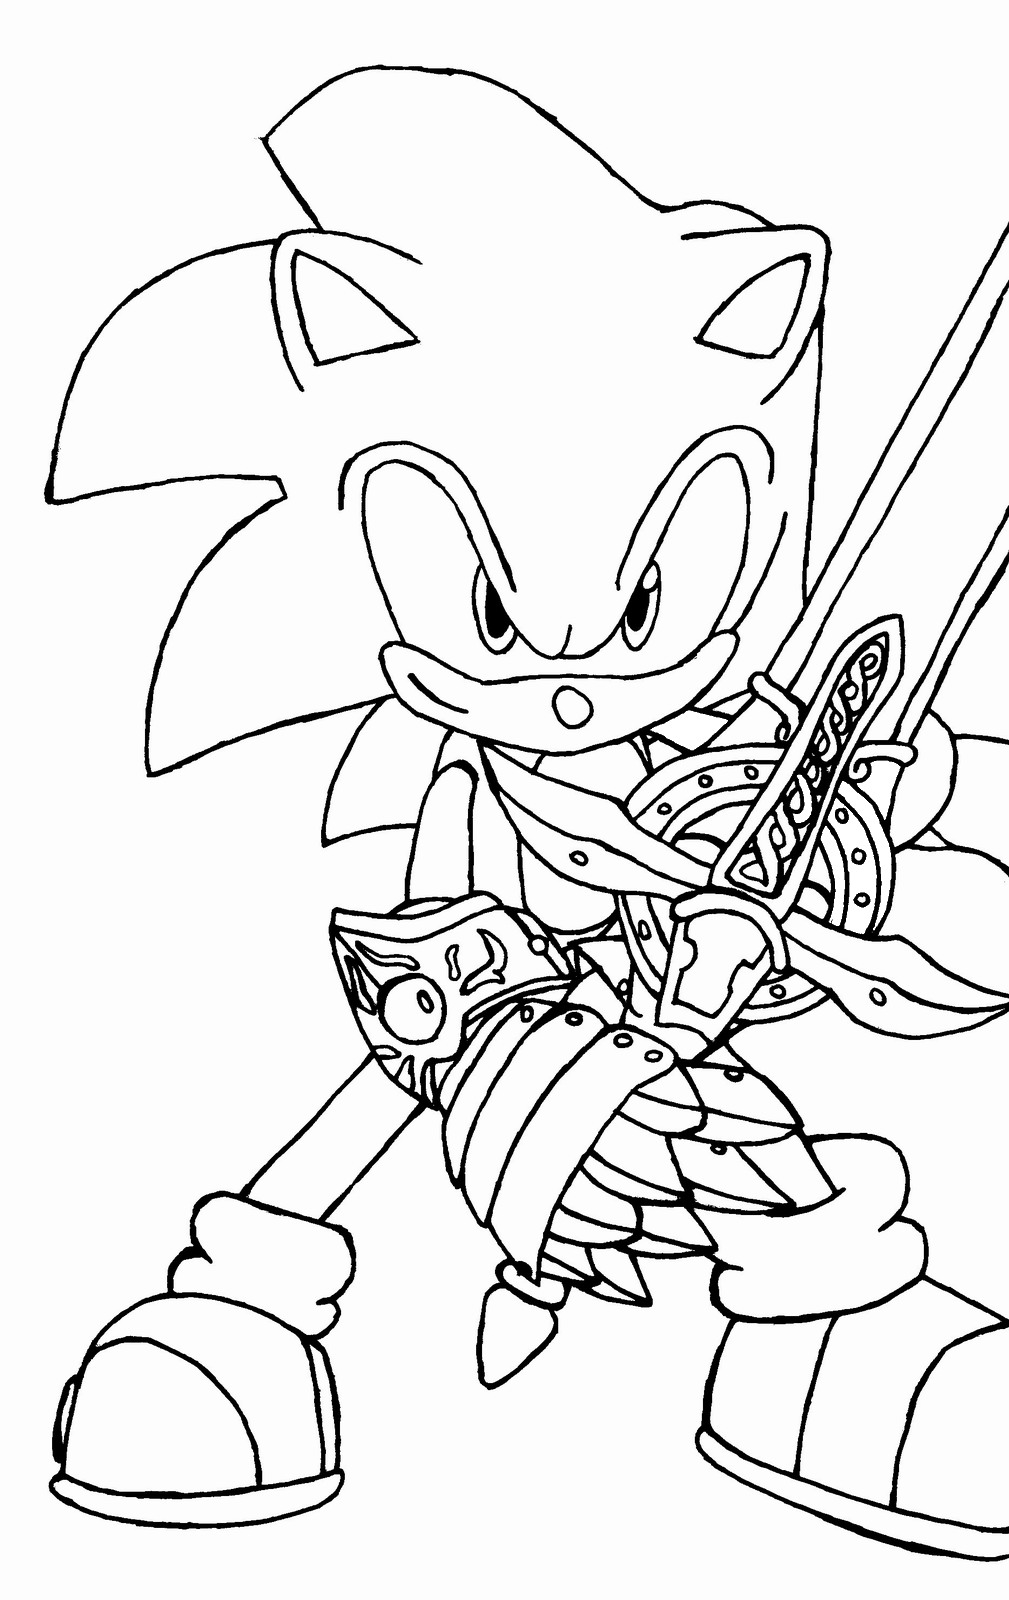 sonic the hedgehog coloring page free printable sonic the hedgehog coloring pages for kids page coloring the hedgehog sonic